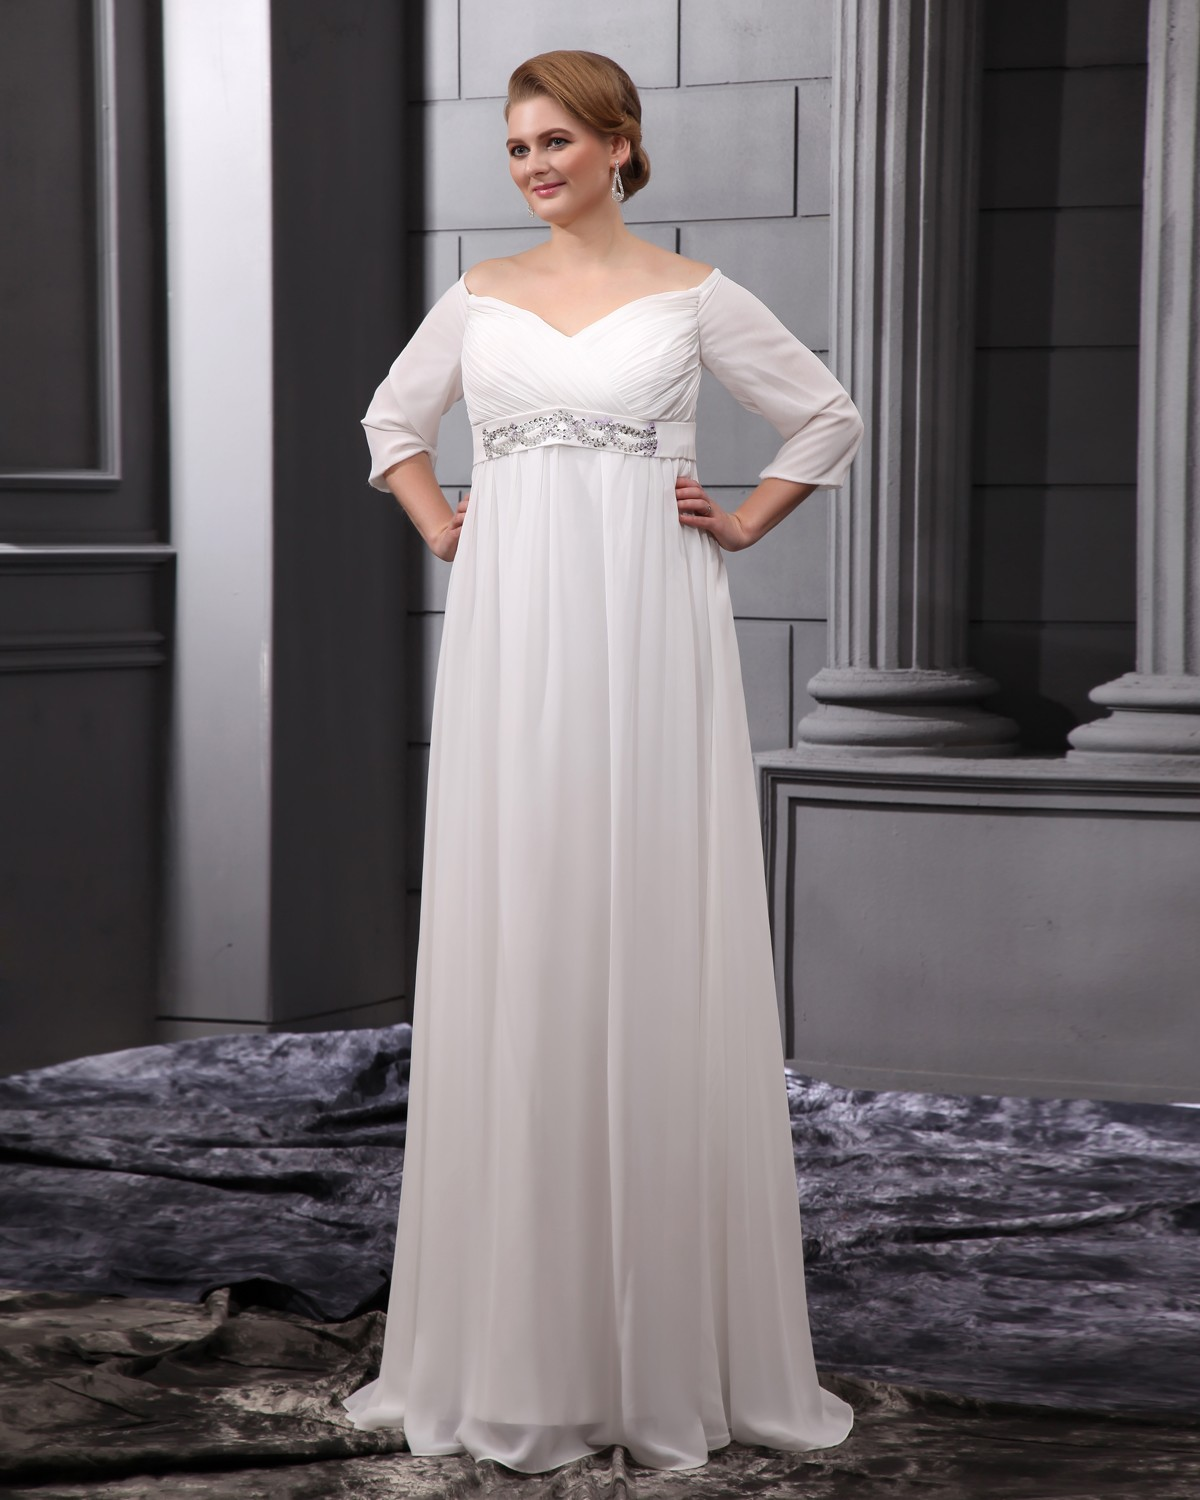 Plus Size Empire Waist Wedding Dresses With Sleeves - Gomes Weine AG